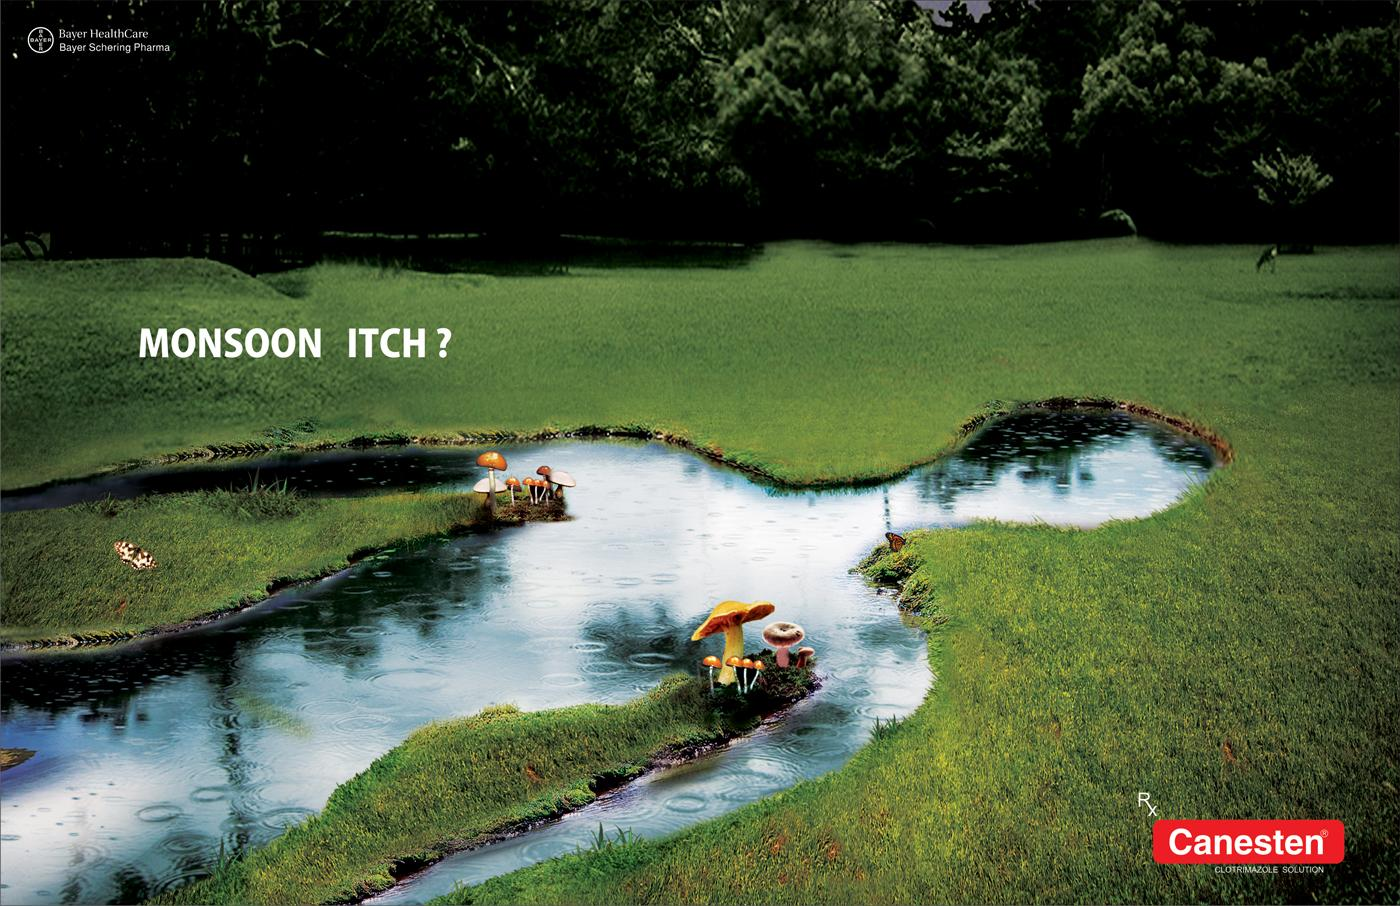 Canesten Print Ad -  Monsoon itch